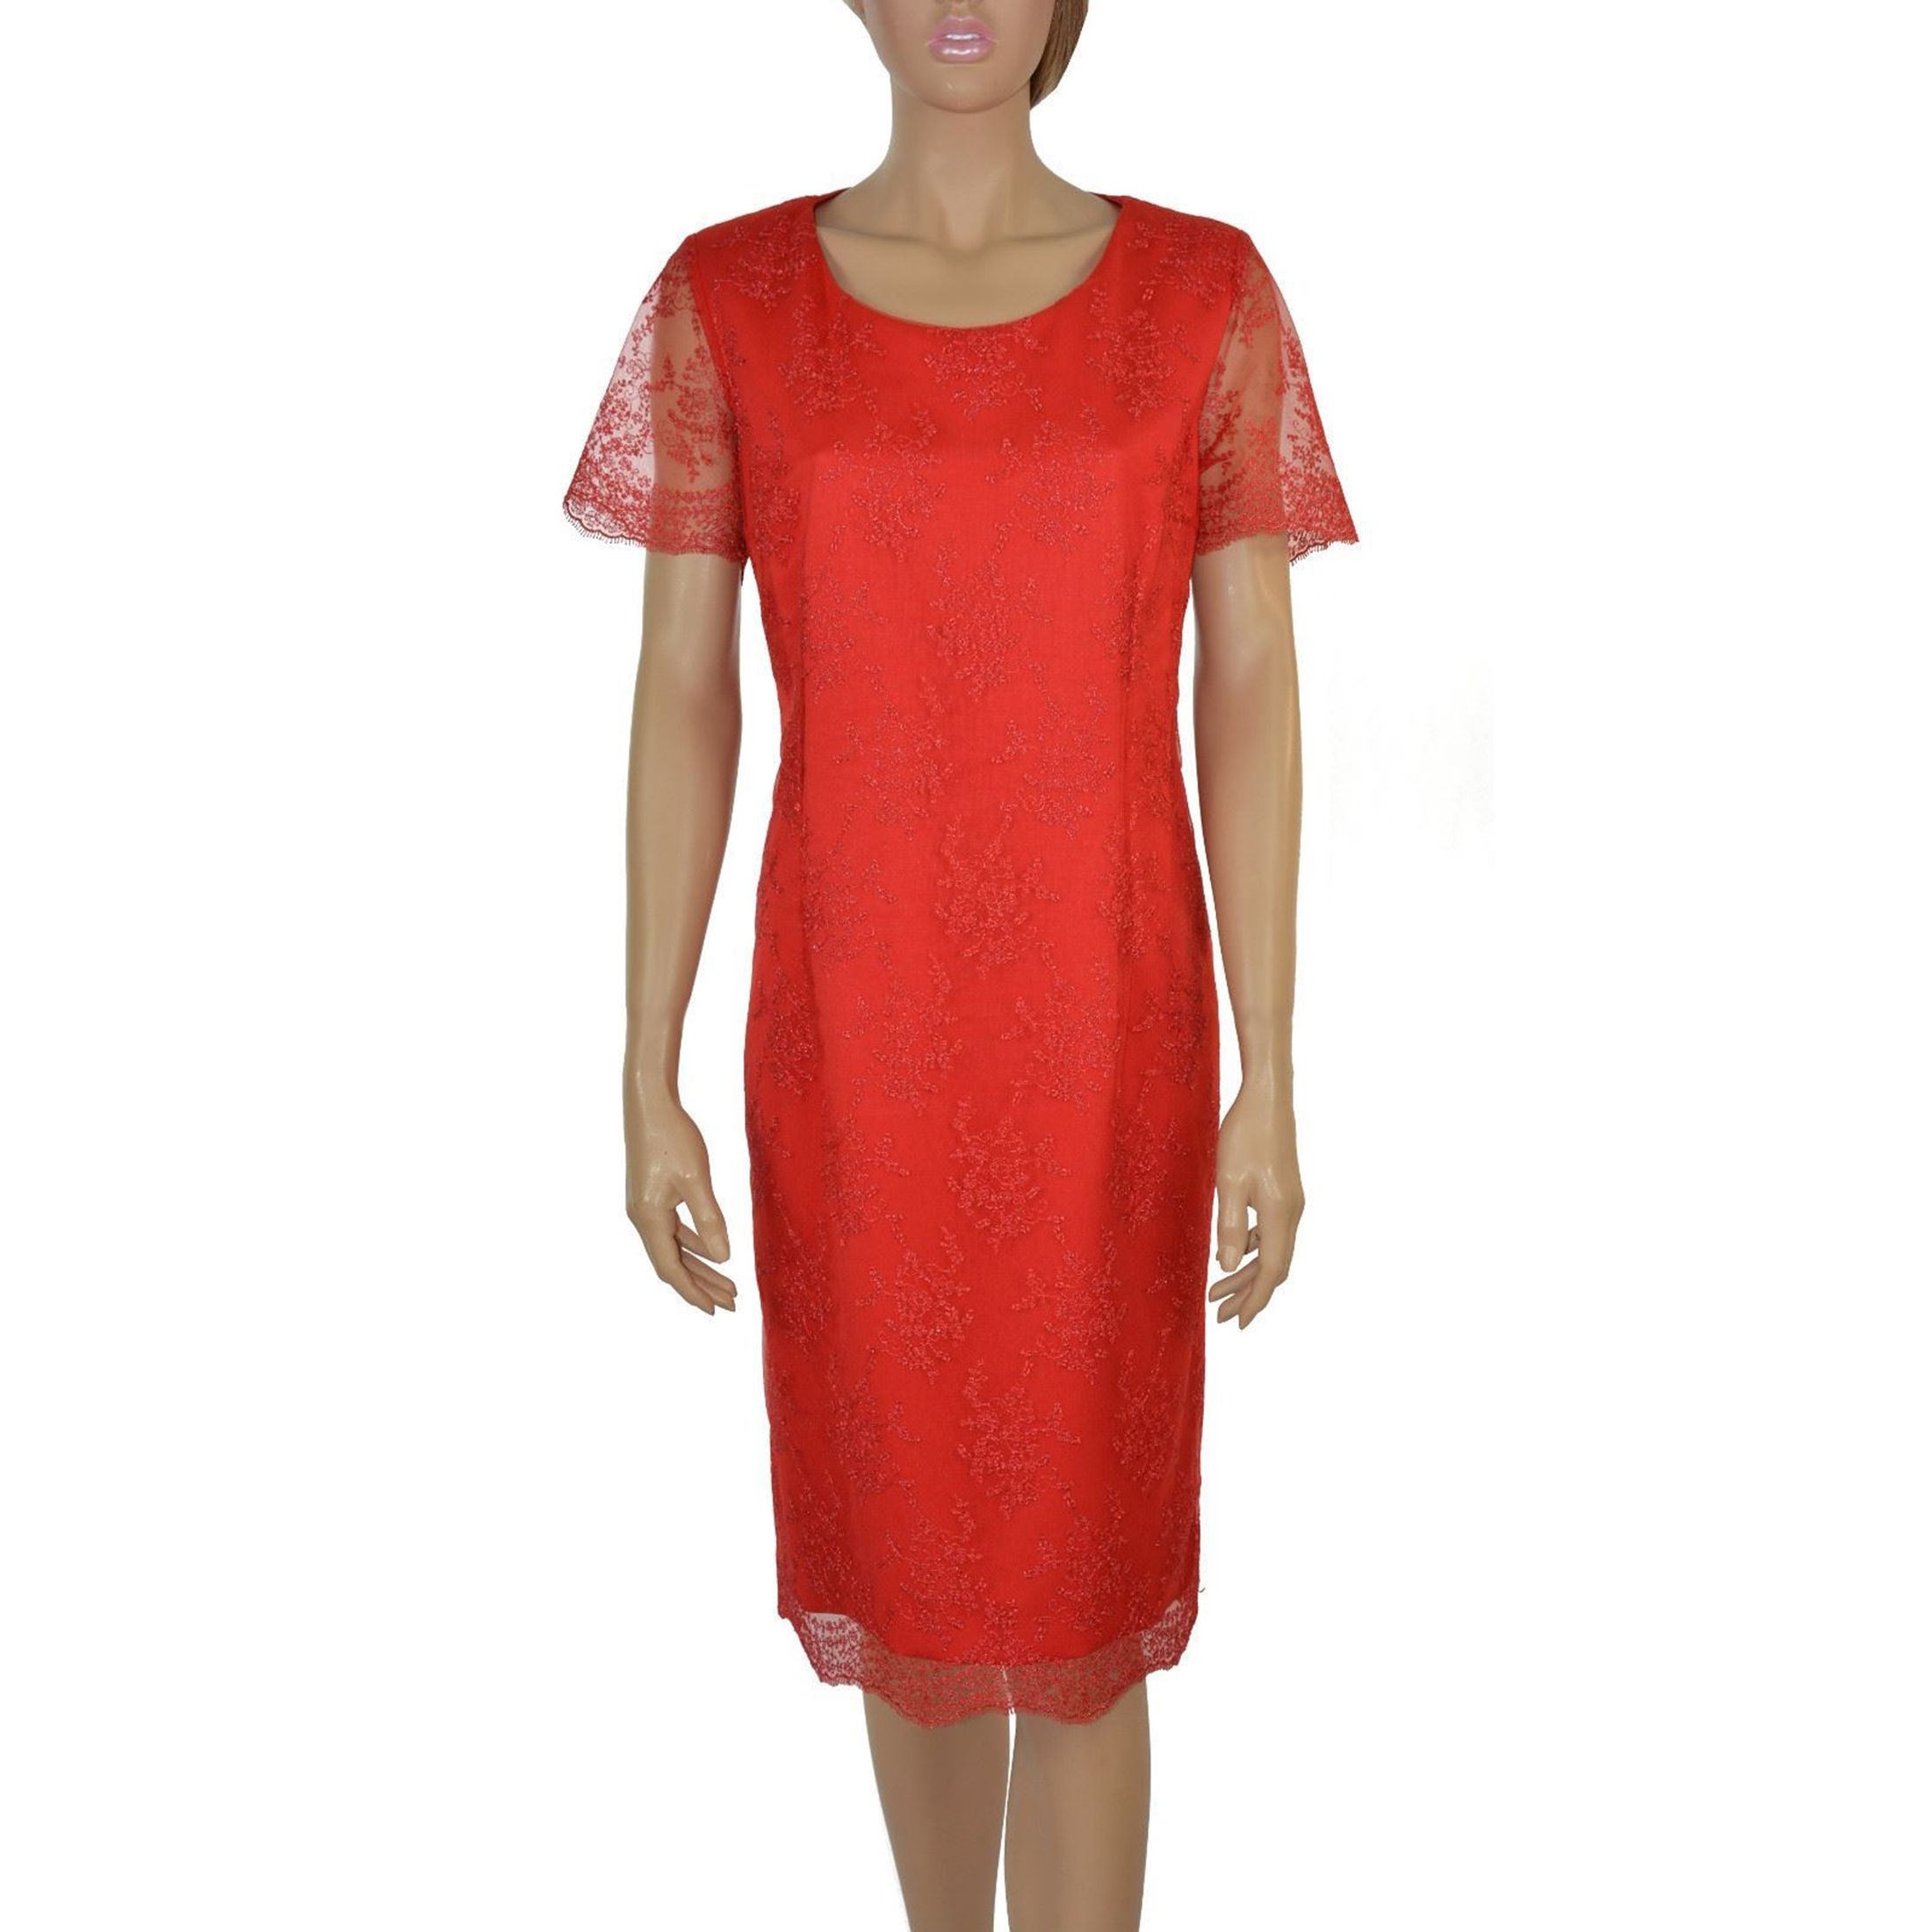 Picture of Women's Dress - LM451395 RED